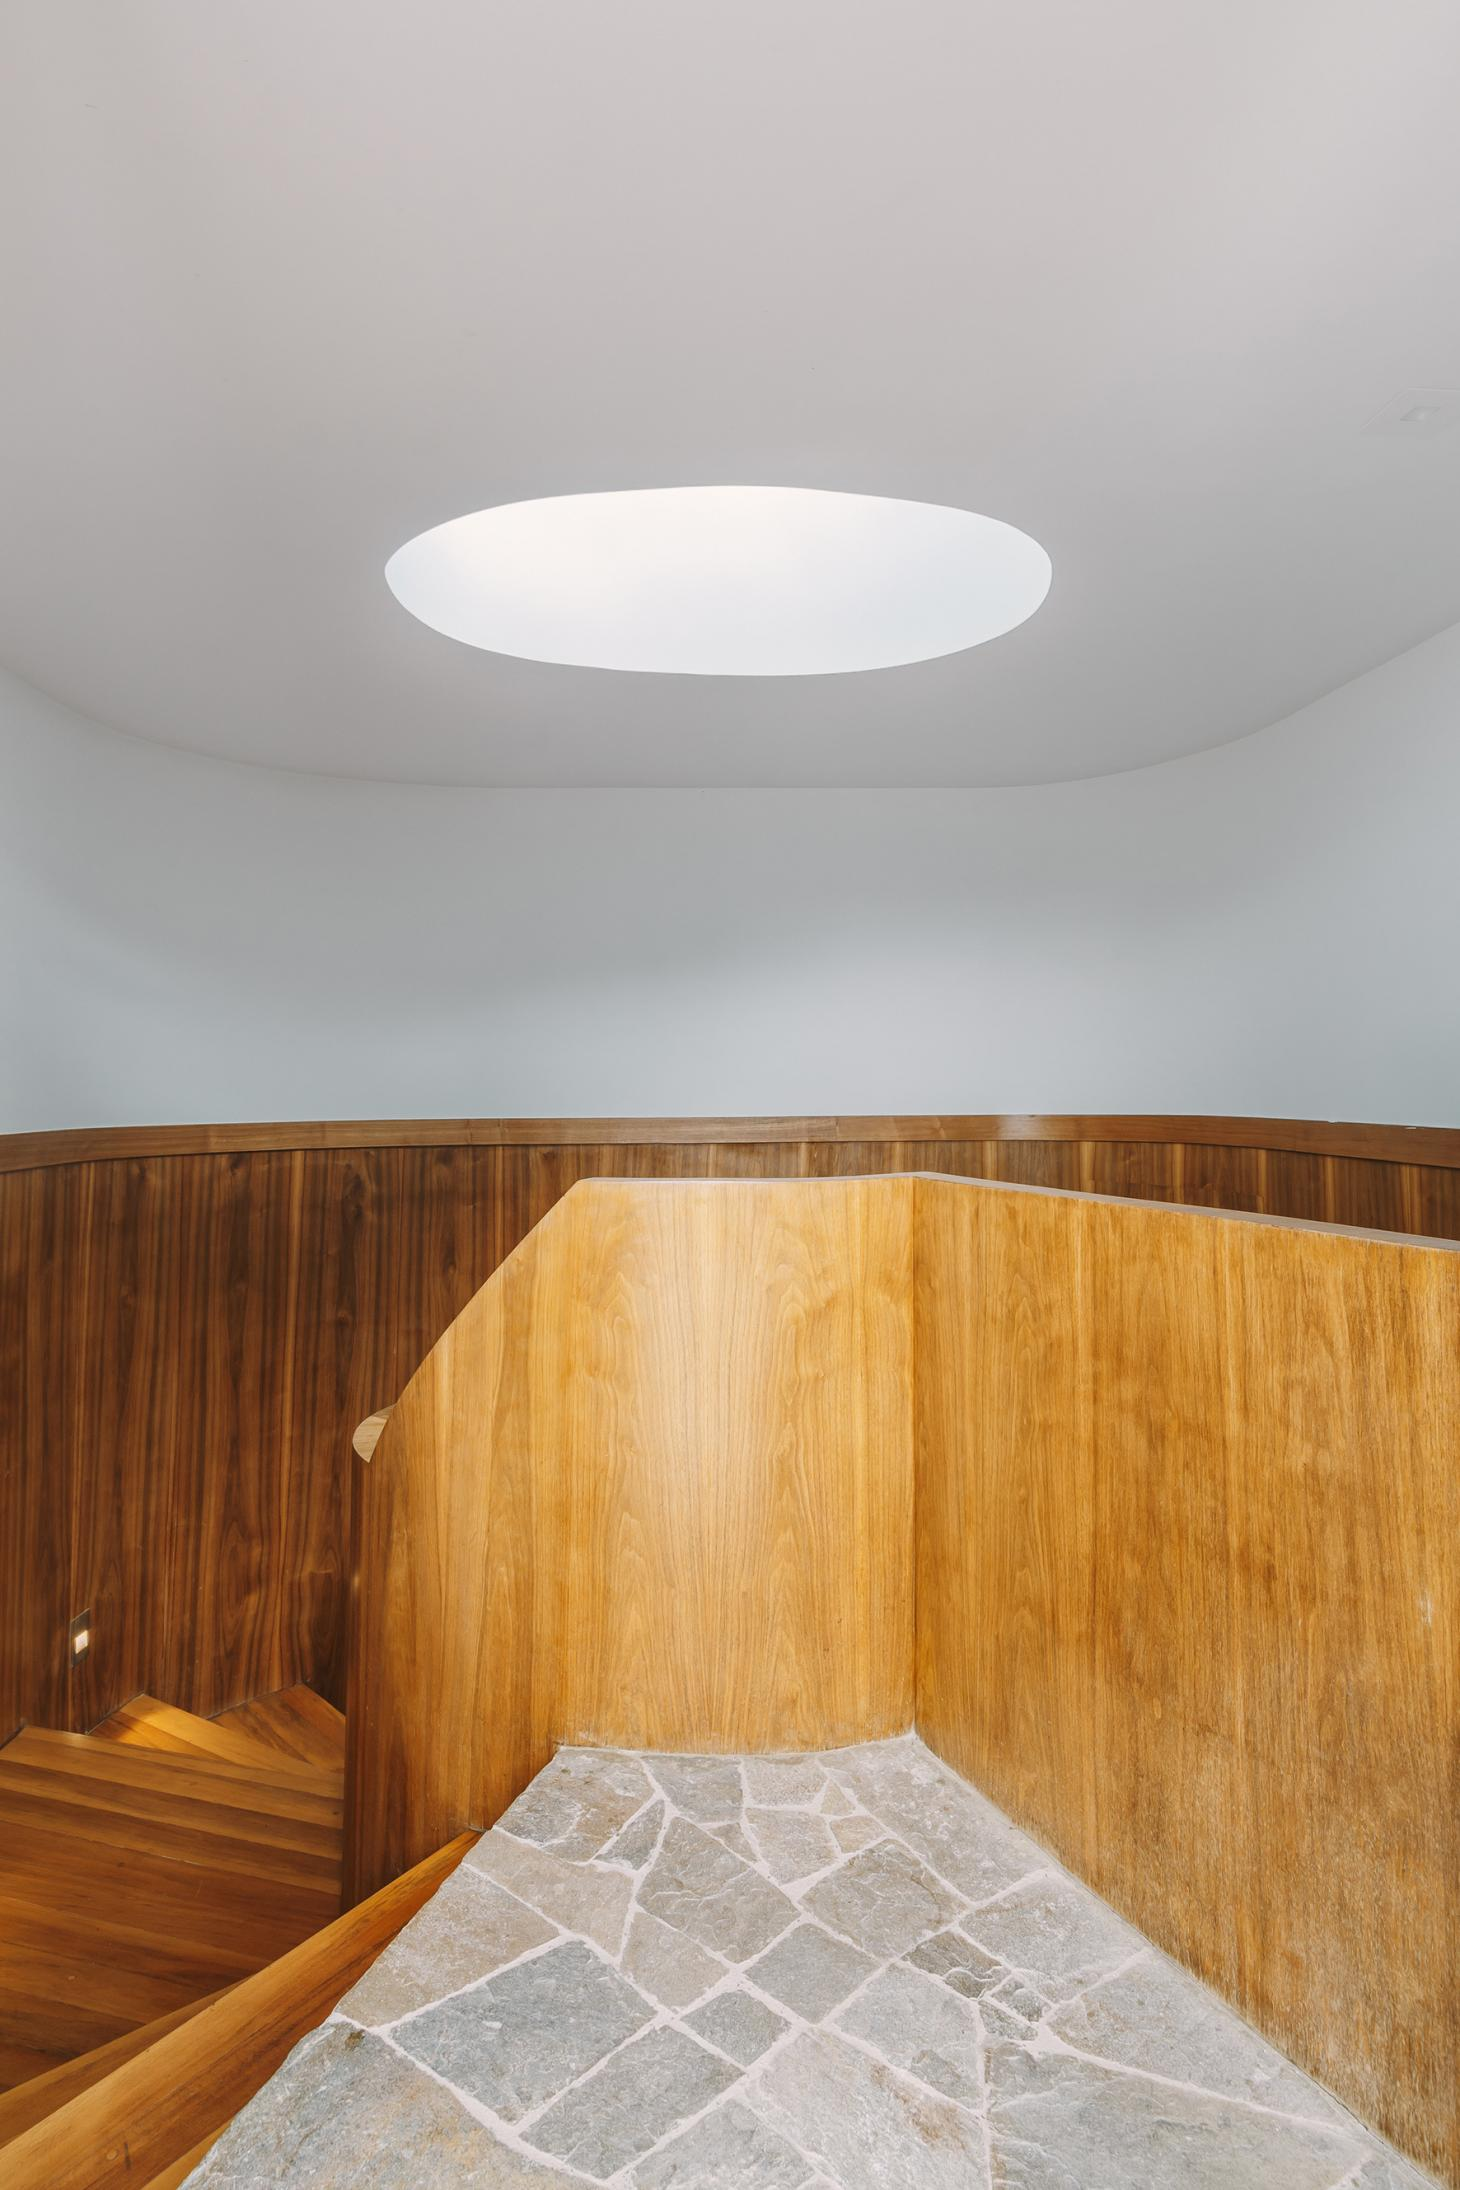 Dinesen Jungle House staircase